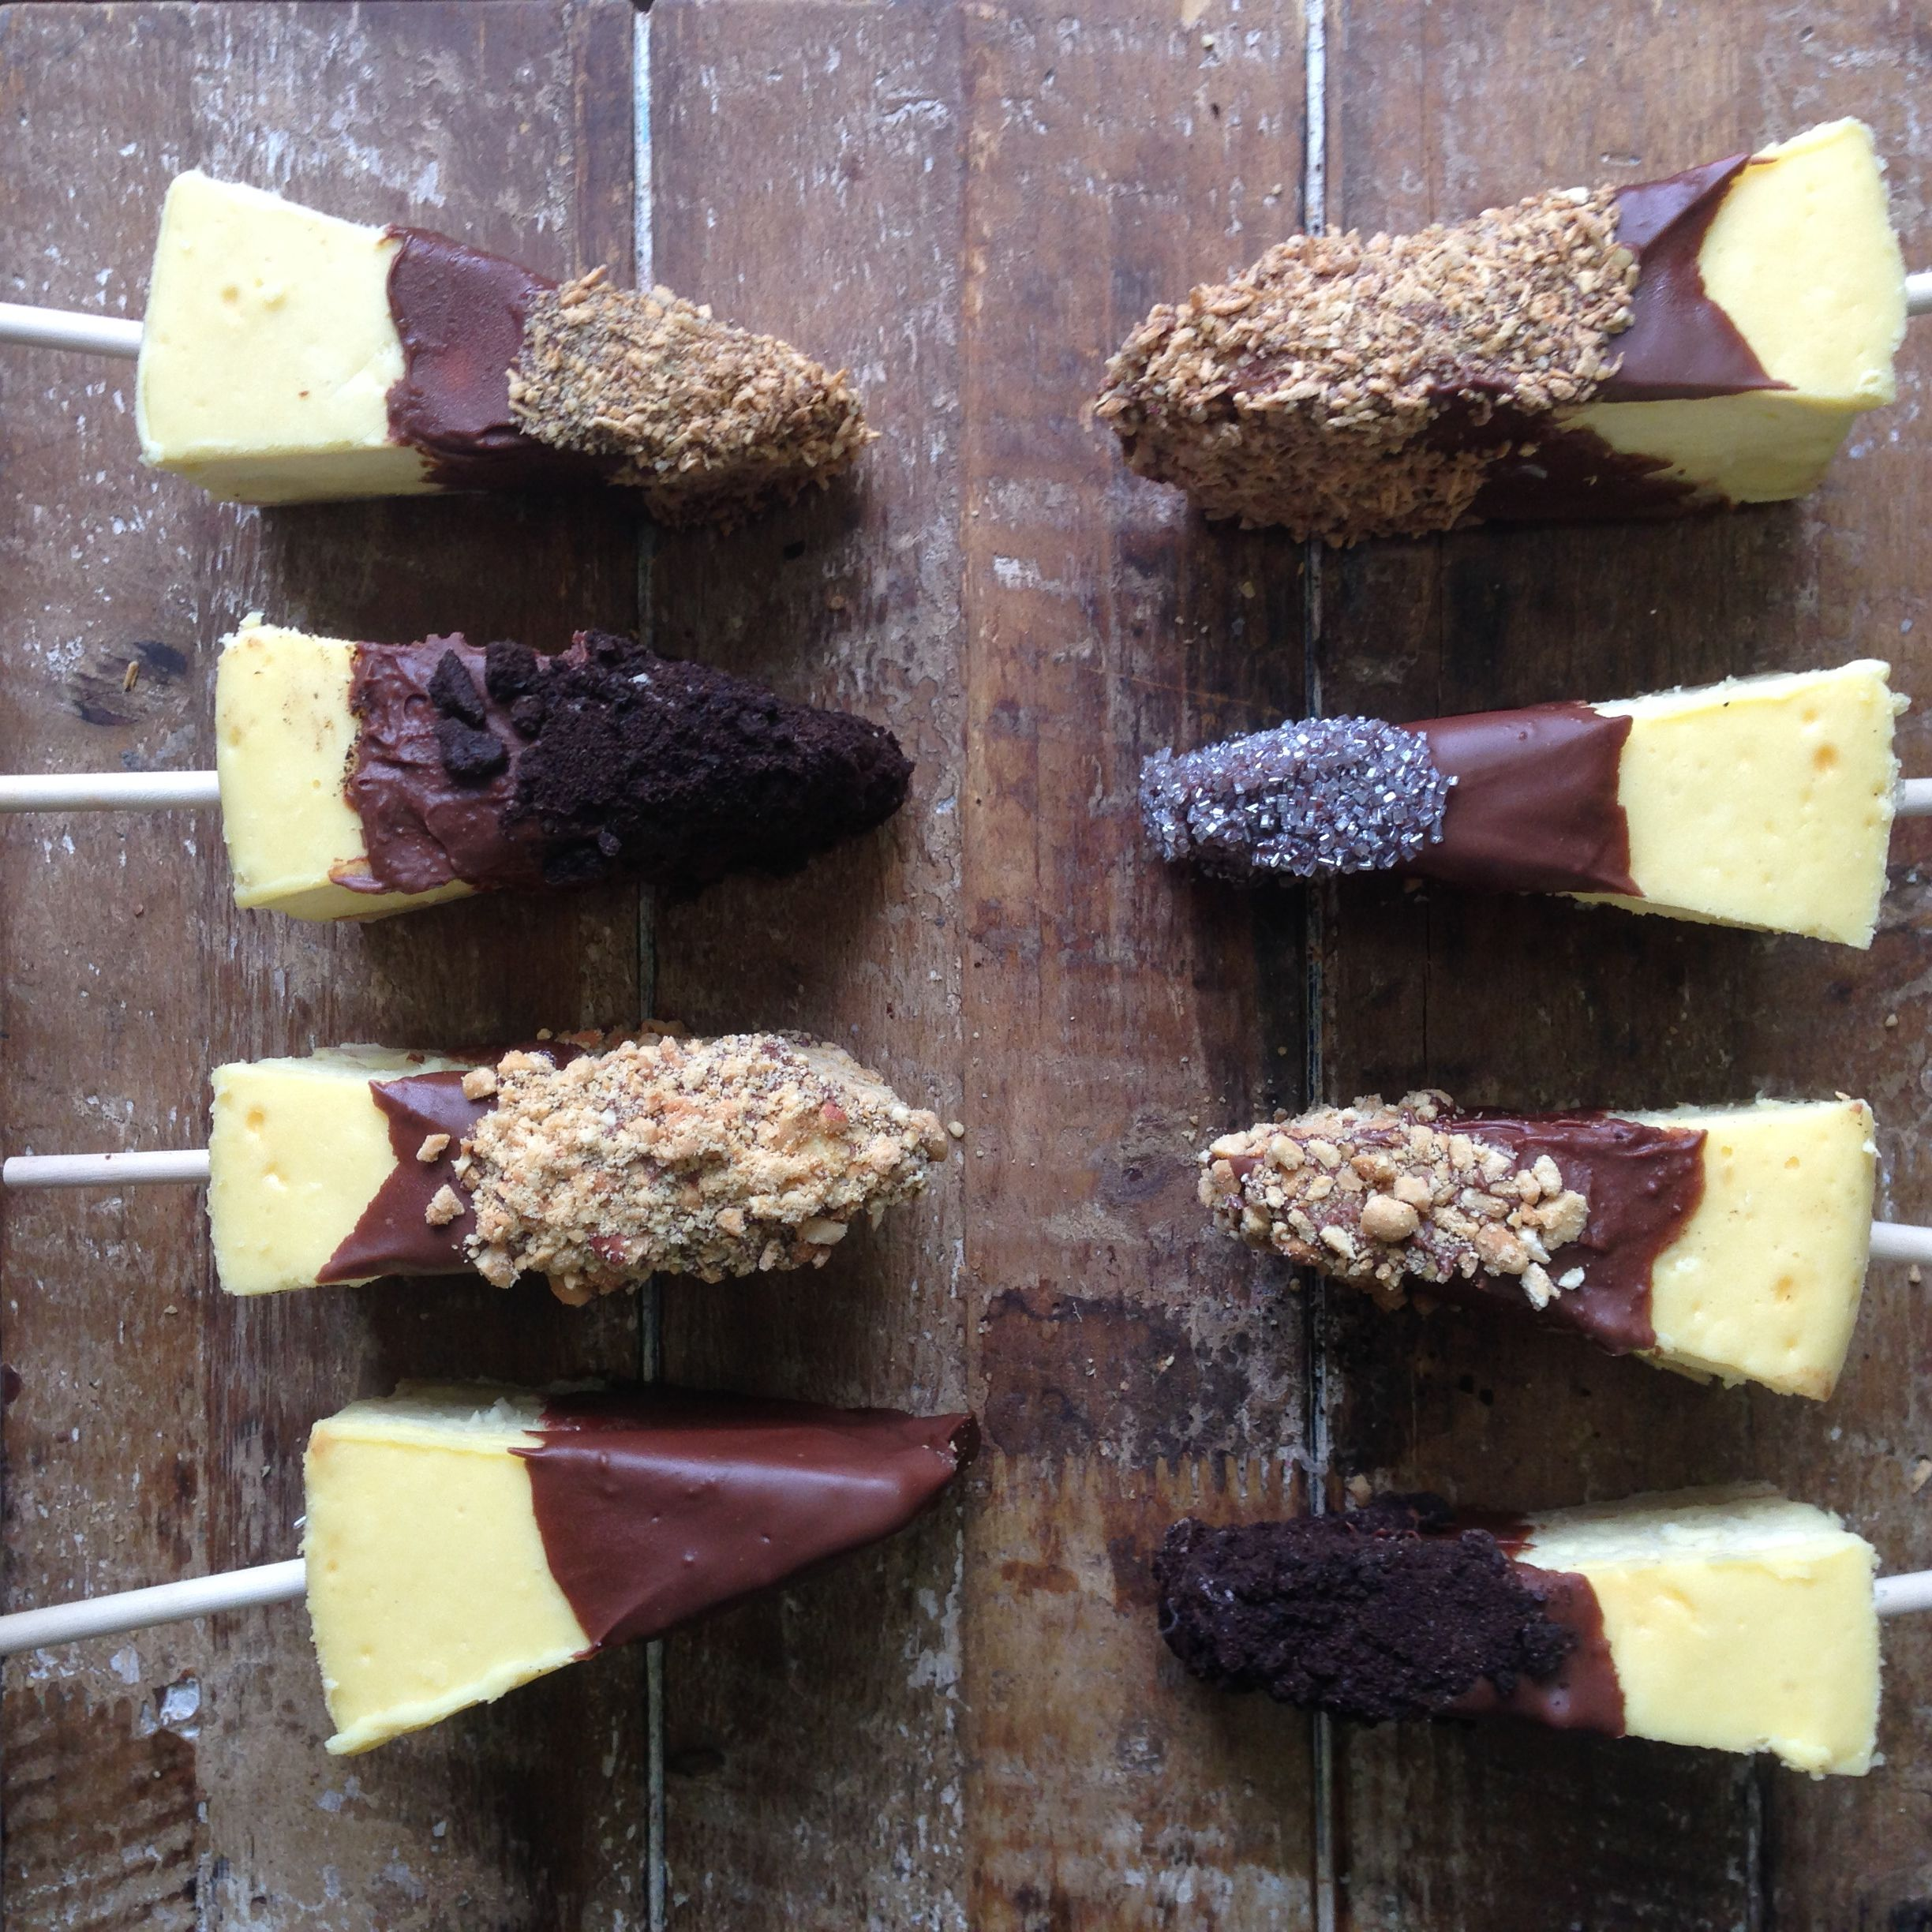 Chocolate dipped cheesecake on a stick portable